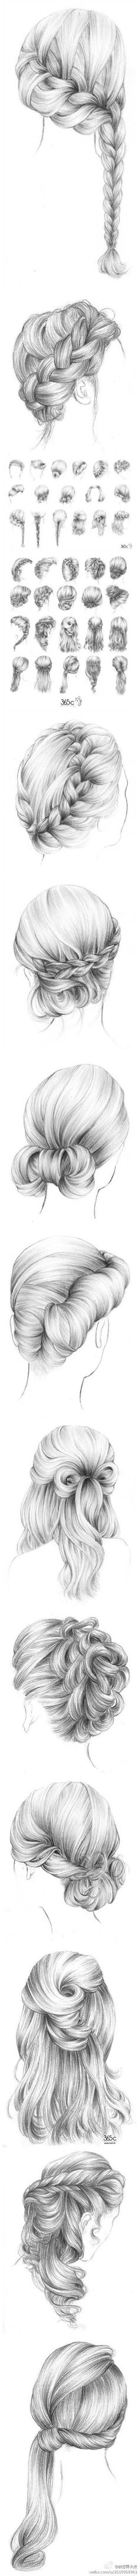 Cute hair drawings